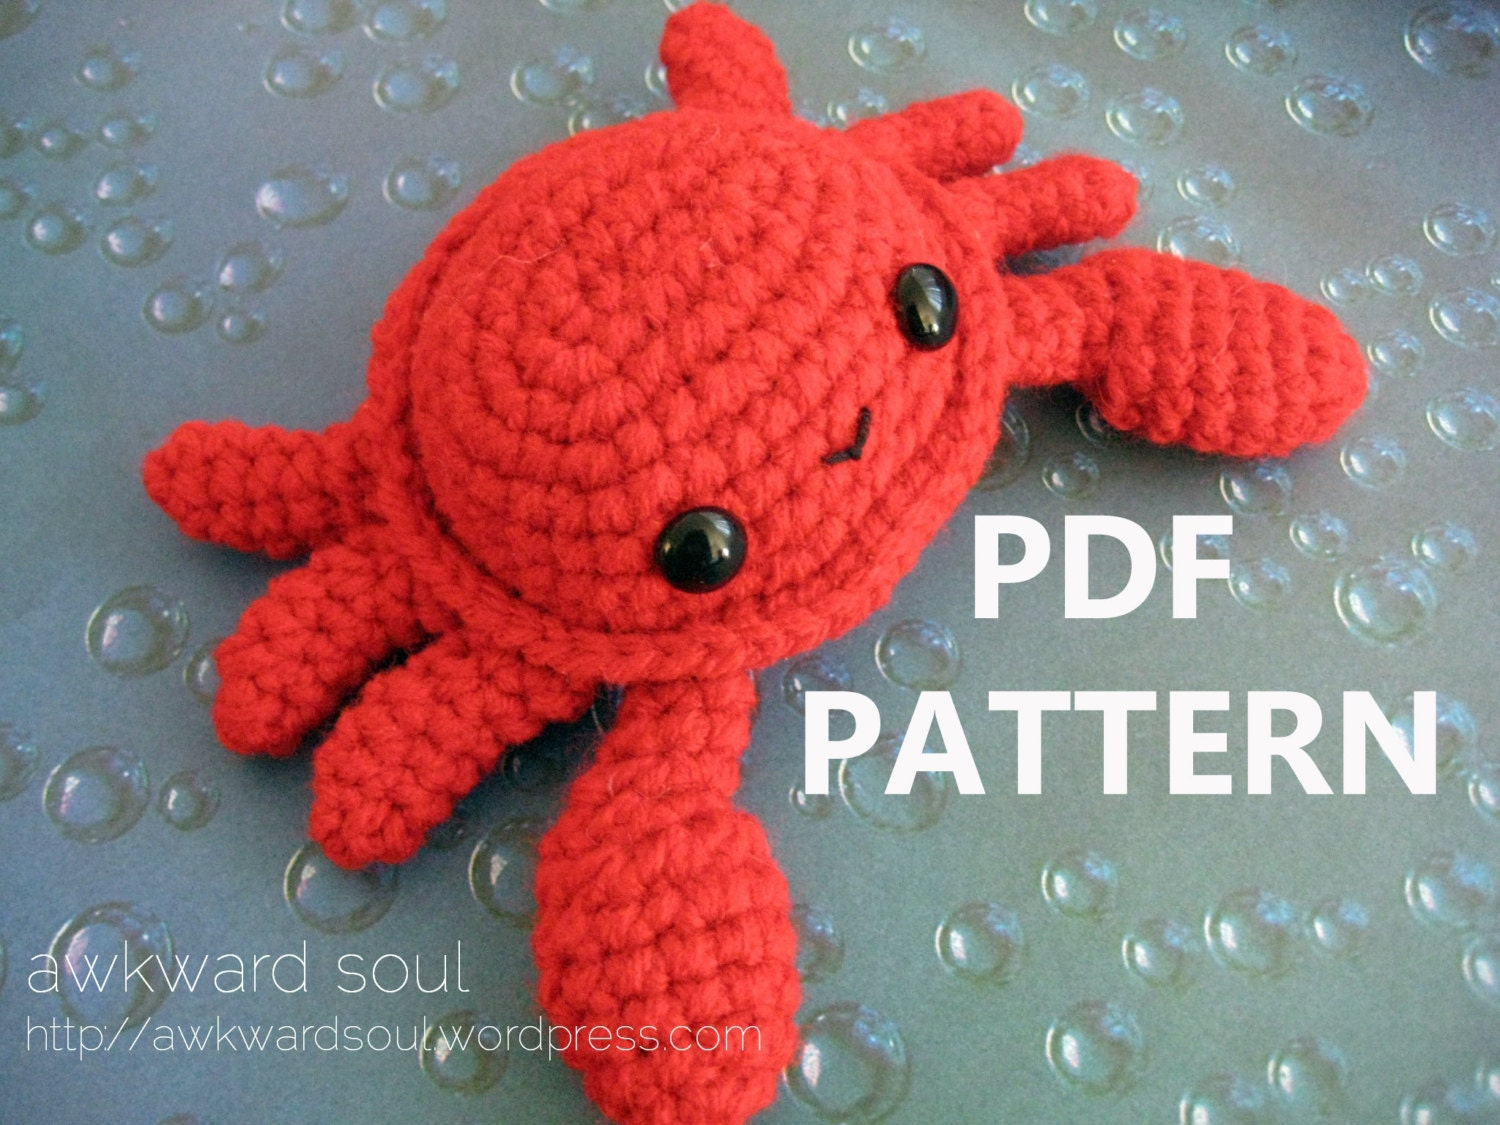 Crochet Amigurumi Patterns Free Beginner : Crab Amigurumi Crochet Pattern PDF